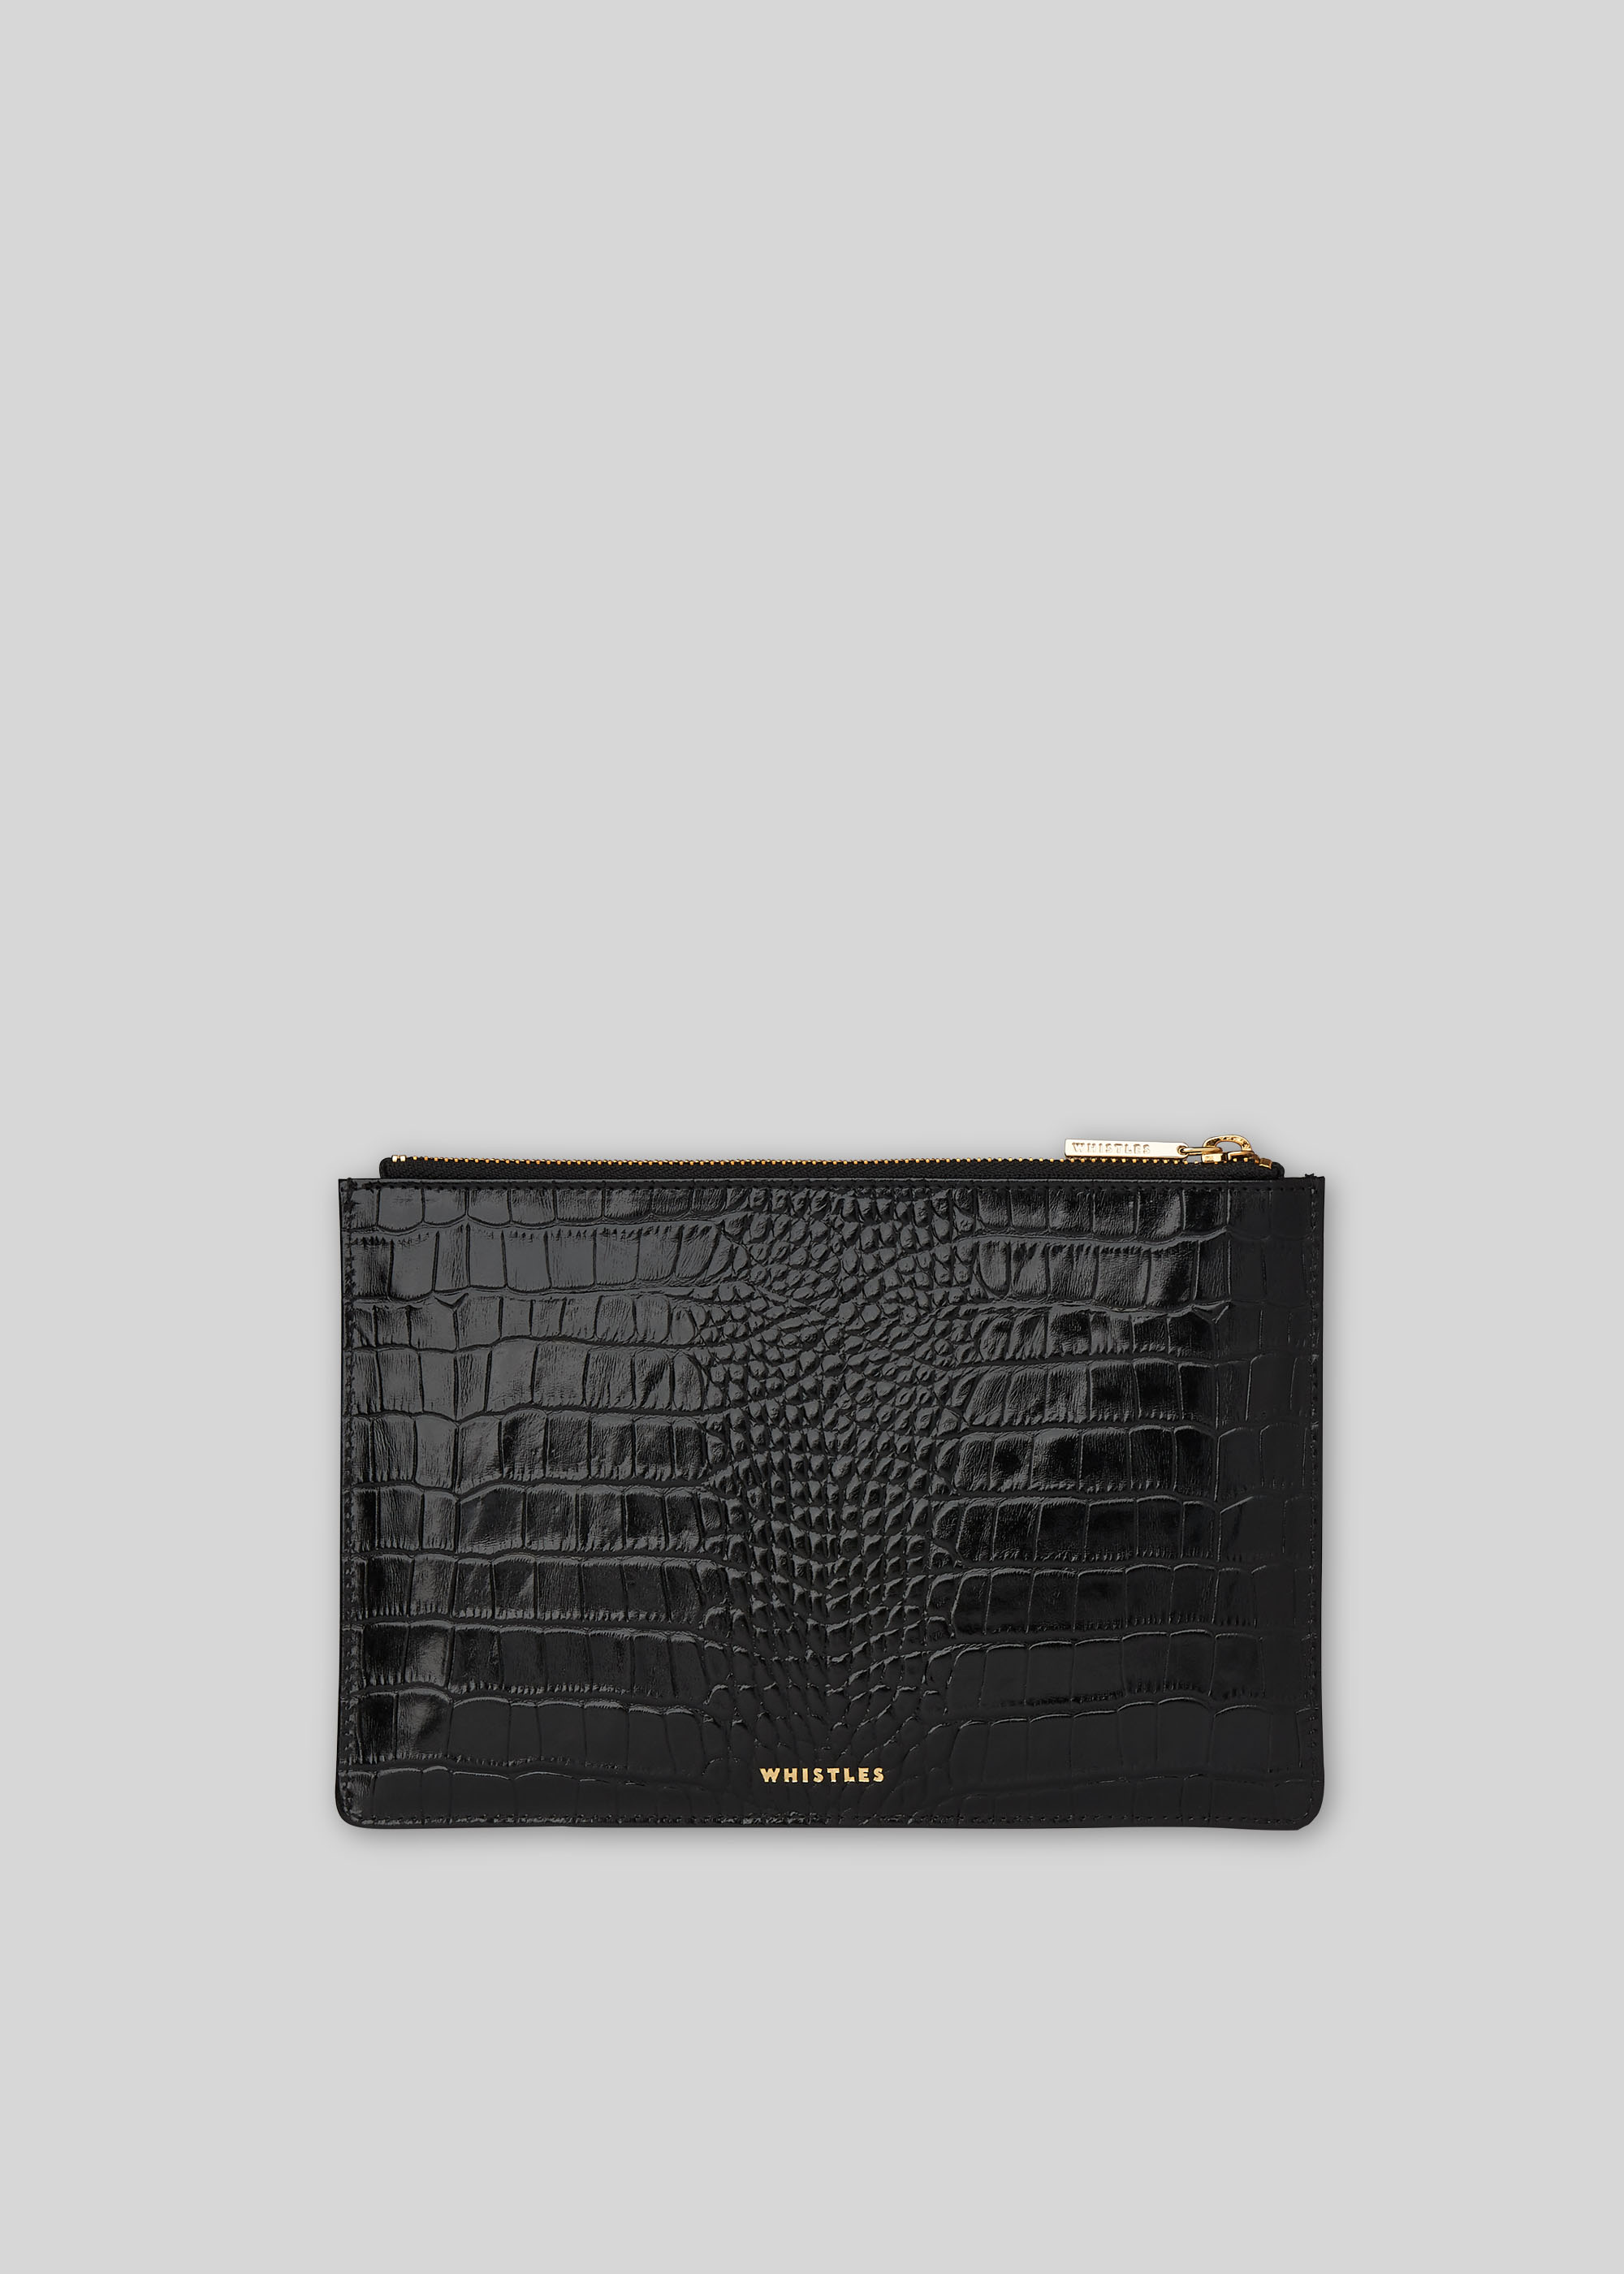 Whistles Women Shiny Croc Small Clutch